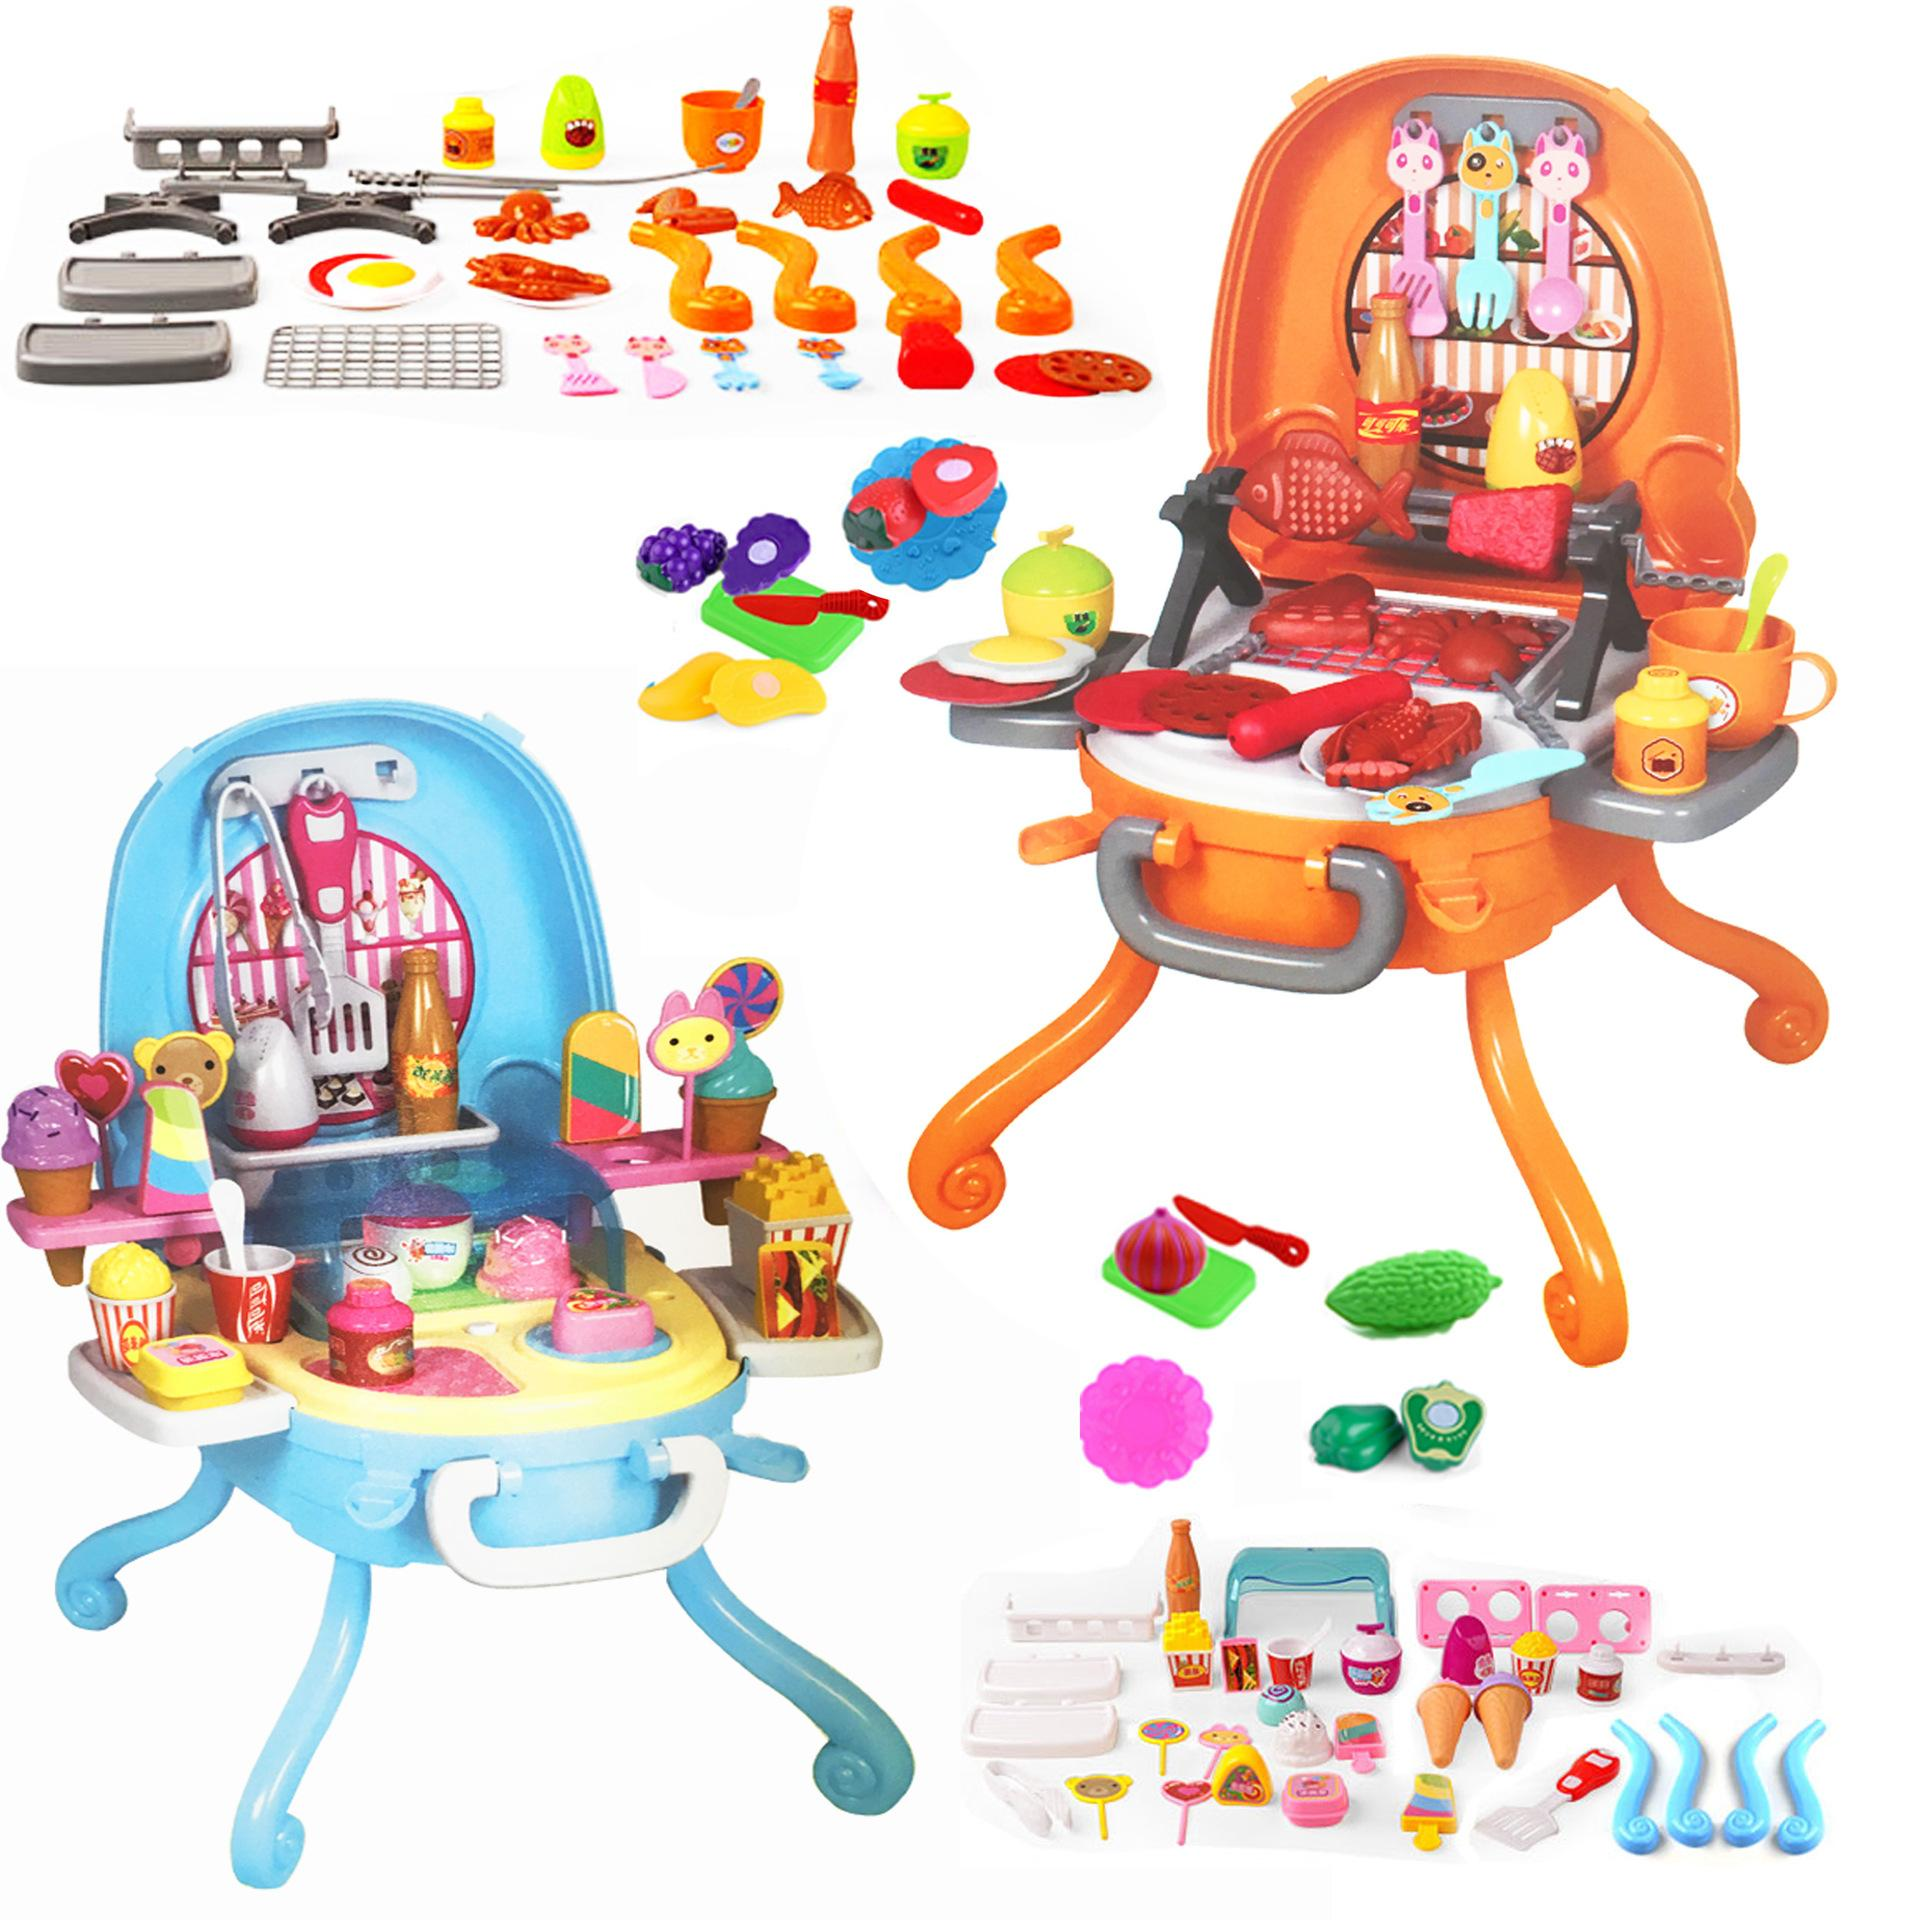 2018 Children Pretend Play Ice Cream Bbq Kitchen Set Kids Toys Simulated  Food Dessert Table Fashion Girls Birthday Gift From Baby_sky, $31.61 |  Dhgate.Com